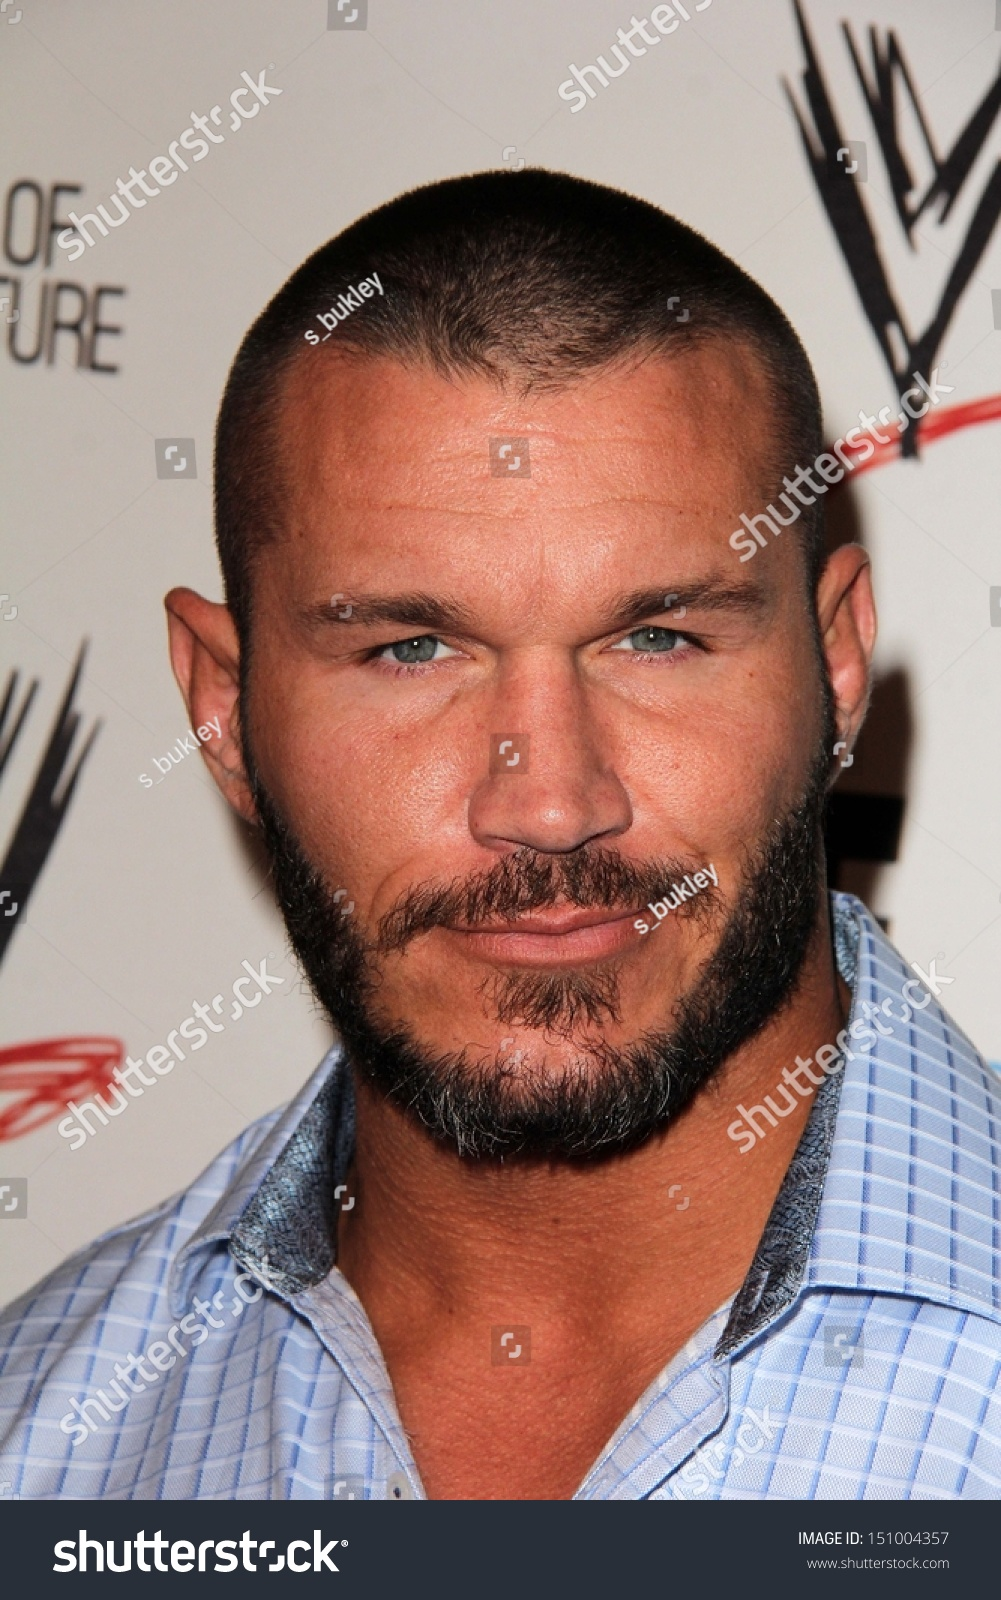 <b>Randy Orton</b> at Superstars for Hope honoring Make-A-Wish, Beverly Hills Hotel - stock-photo-randy-orton-at-superstars-for-hope-honoring-make-a-wish-beverly-hills-hotel-beverly-hills-ca-151004357